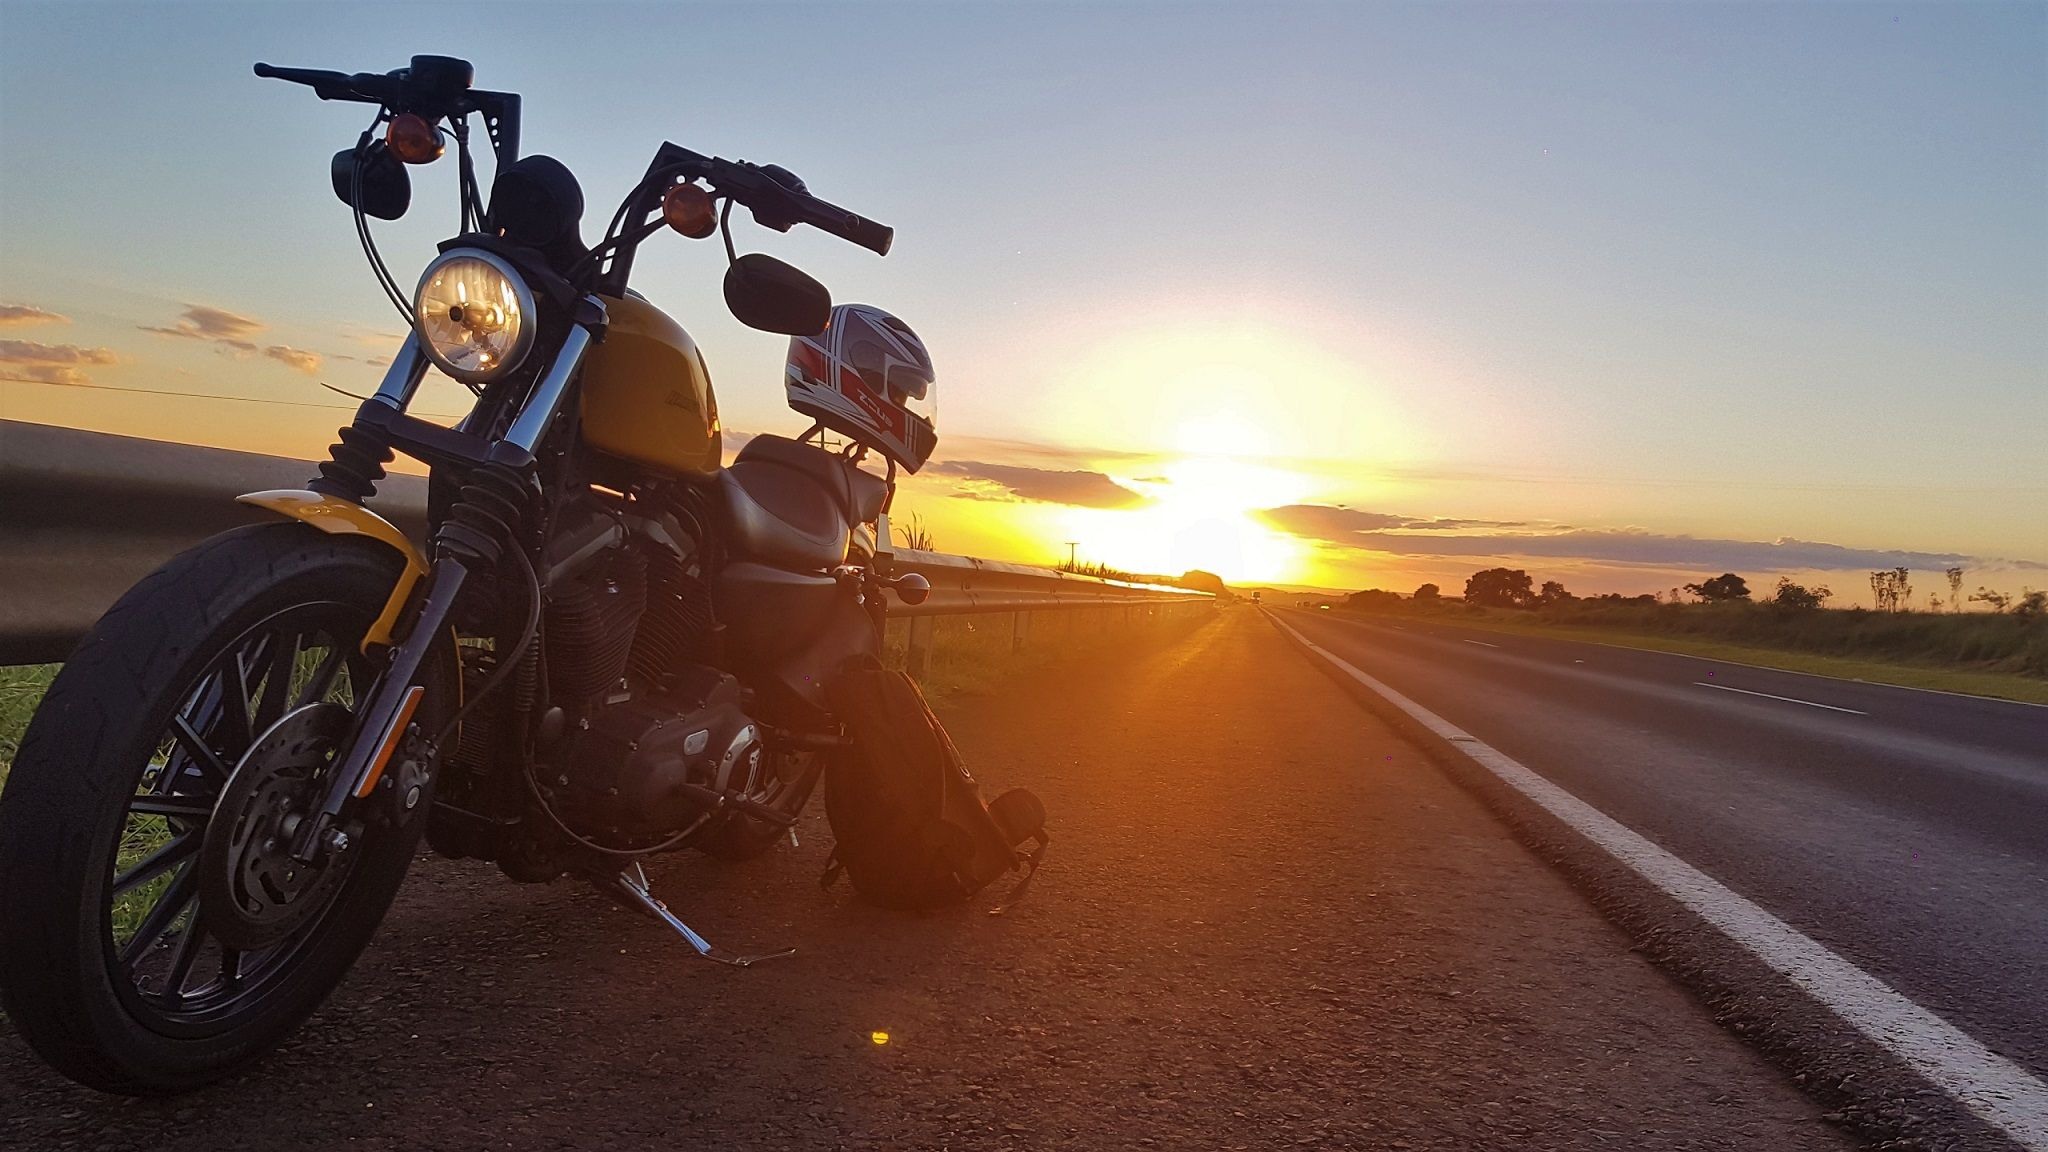 Harley Sunset Wallpapers Top Free Harley Sunset Backgrounds Wallpaperaccess